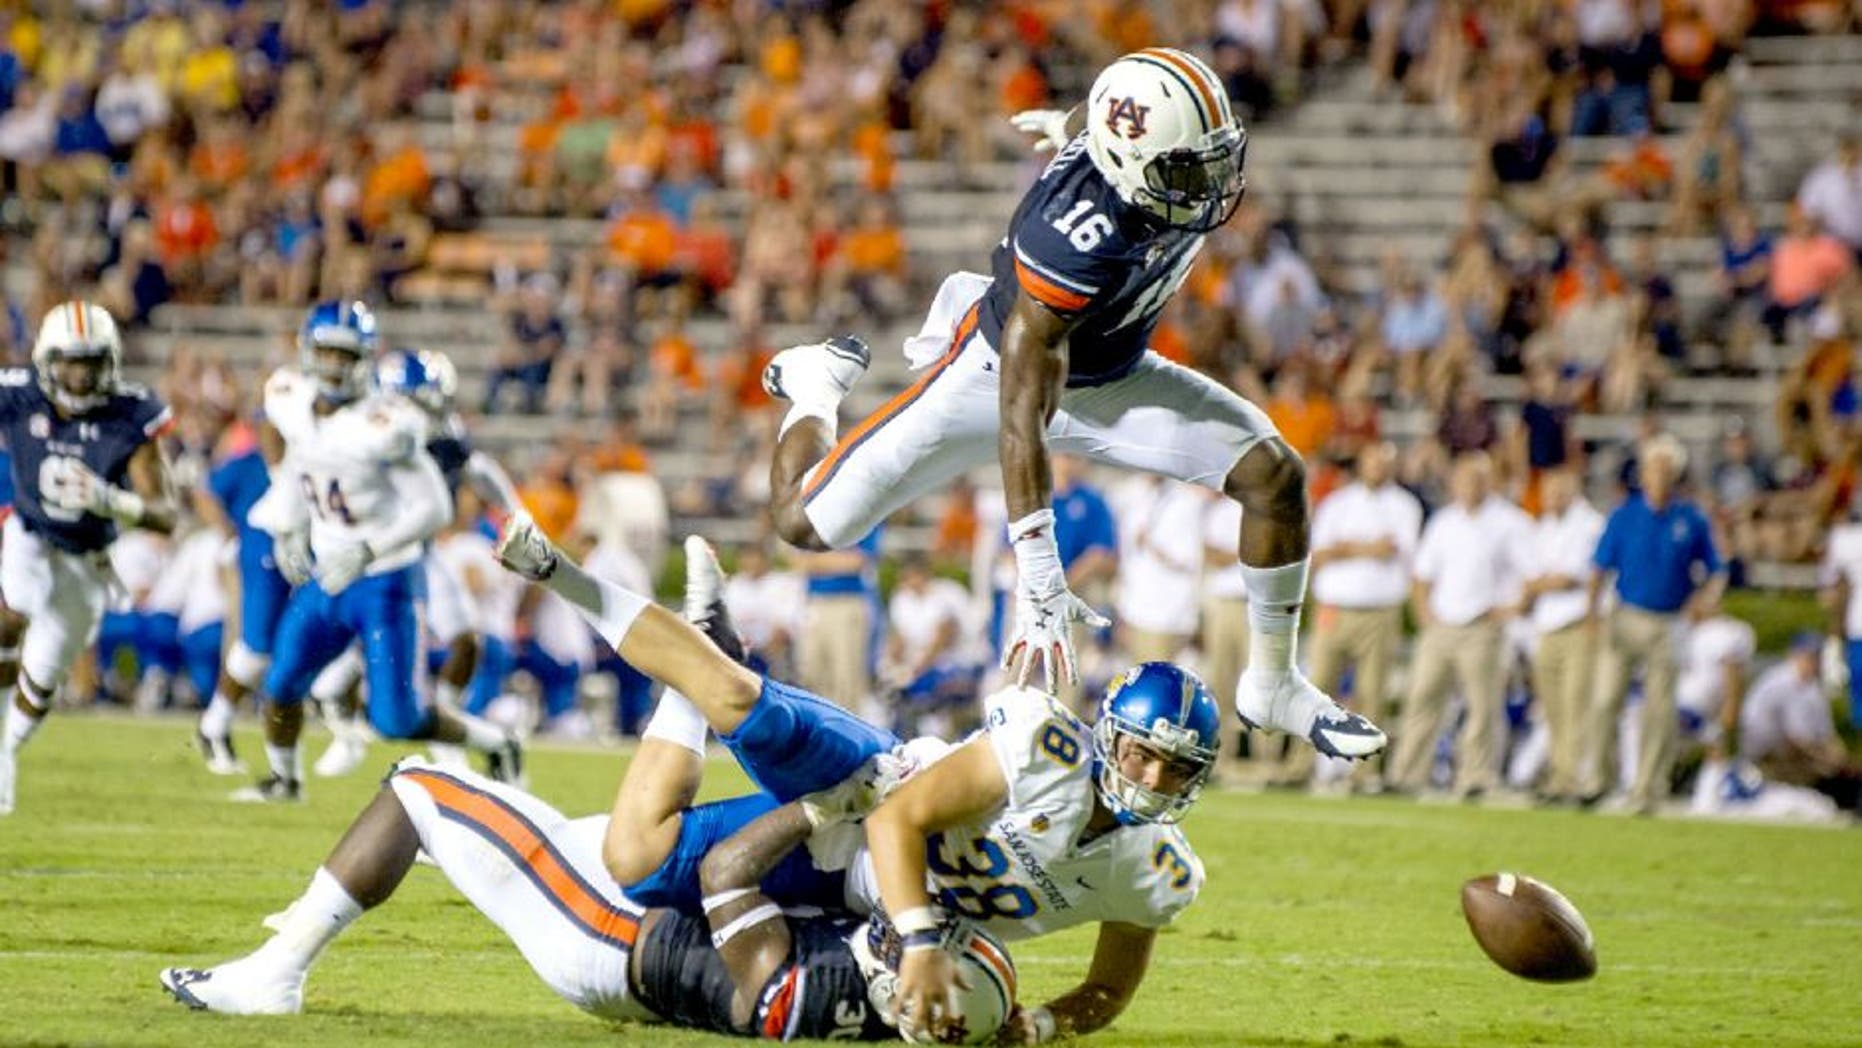 AUBURN, AL - SEPTEMBER 6: Linebacker JaViere Mitchell #16 of the Auburn Tigers leaps over linebacker Tre' Williams #30 of the Auburn Tigers and place kicker Michael Carrizosa #38 of the San Jose State Spartans to attempt to recover a fumble on September 6, 2014 at Jordan-Hare Stadium in Auburn, Alabama. Auburn defeated San Jose State 59-13. (Photo by Michael Chang/Getty Images)